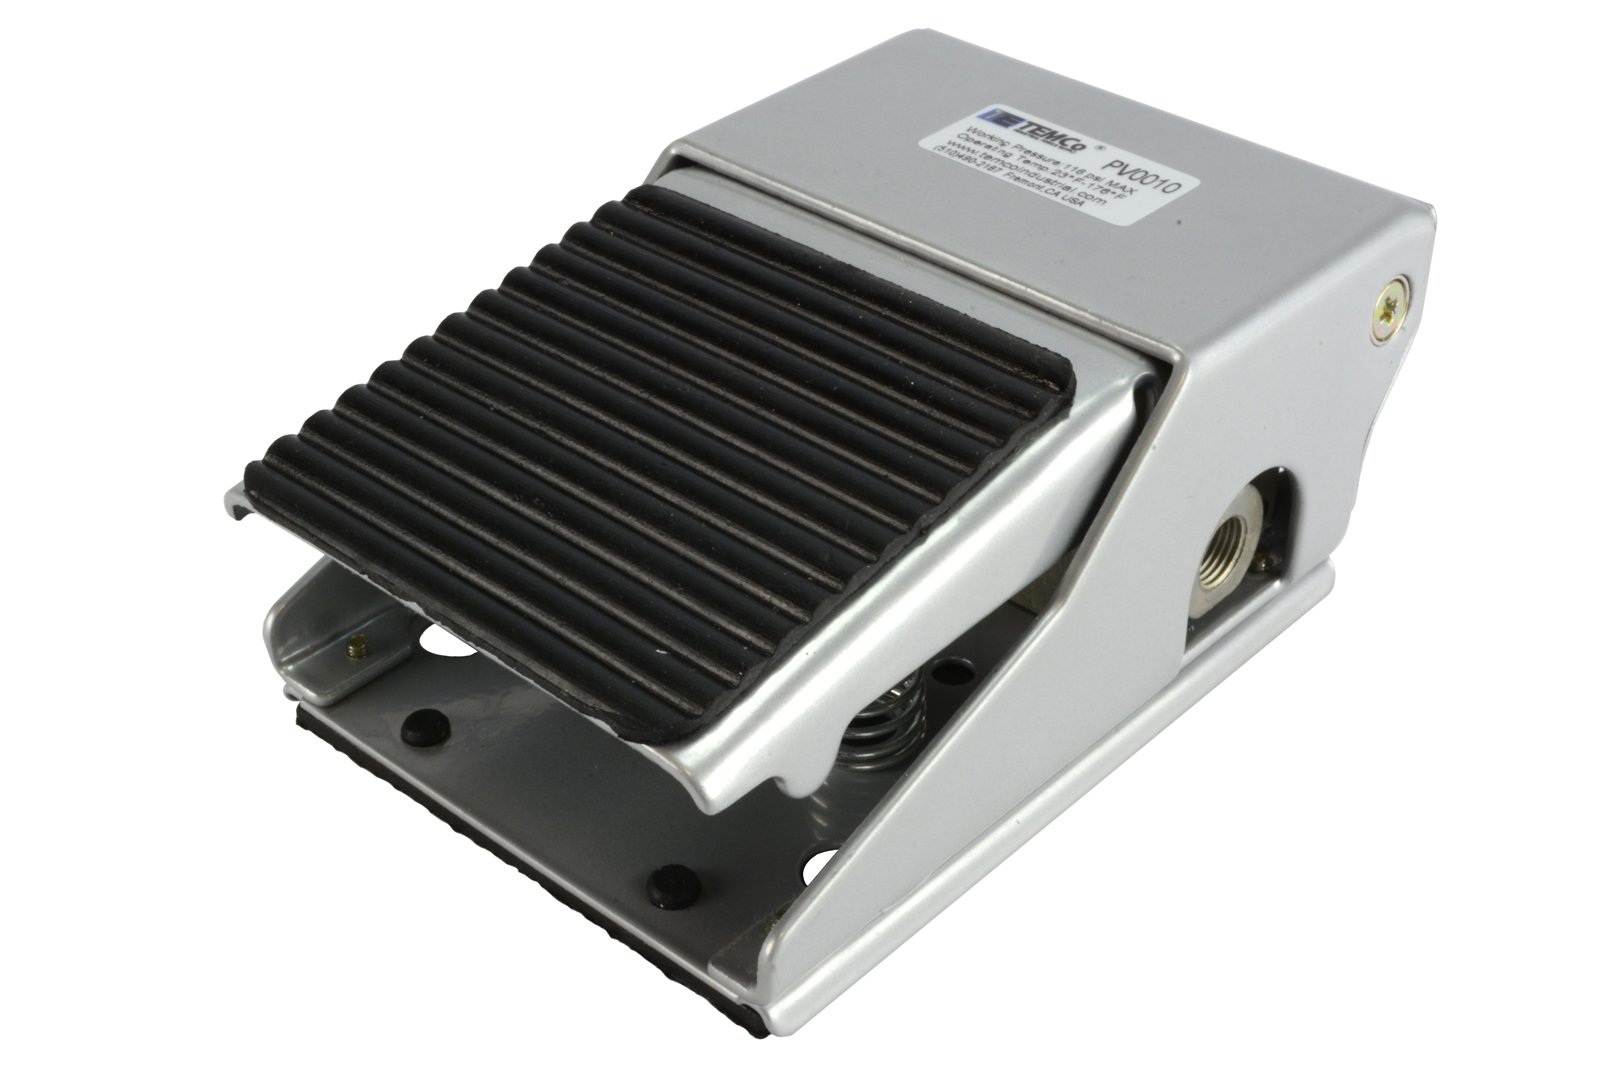 TEMCo Foot Pedal Control Valve 2 Position 3 Port 1/4'' NPT Air Pneumatic Switch 5 Year Warranty